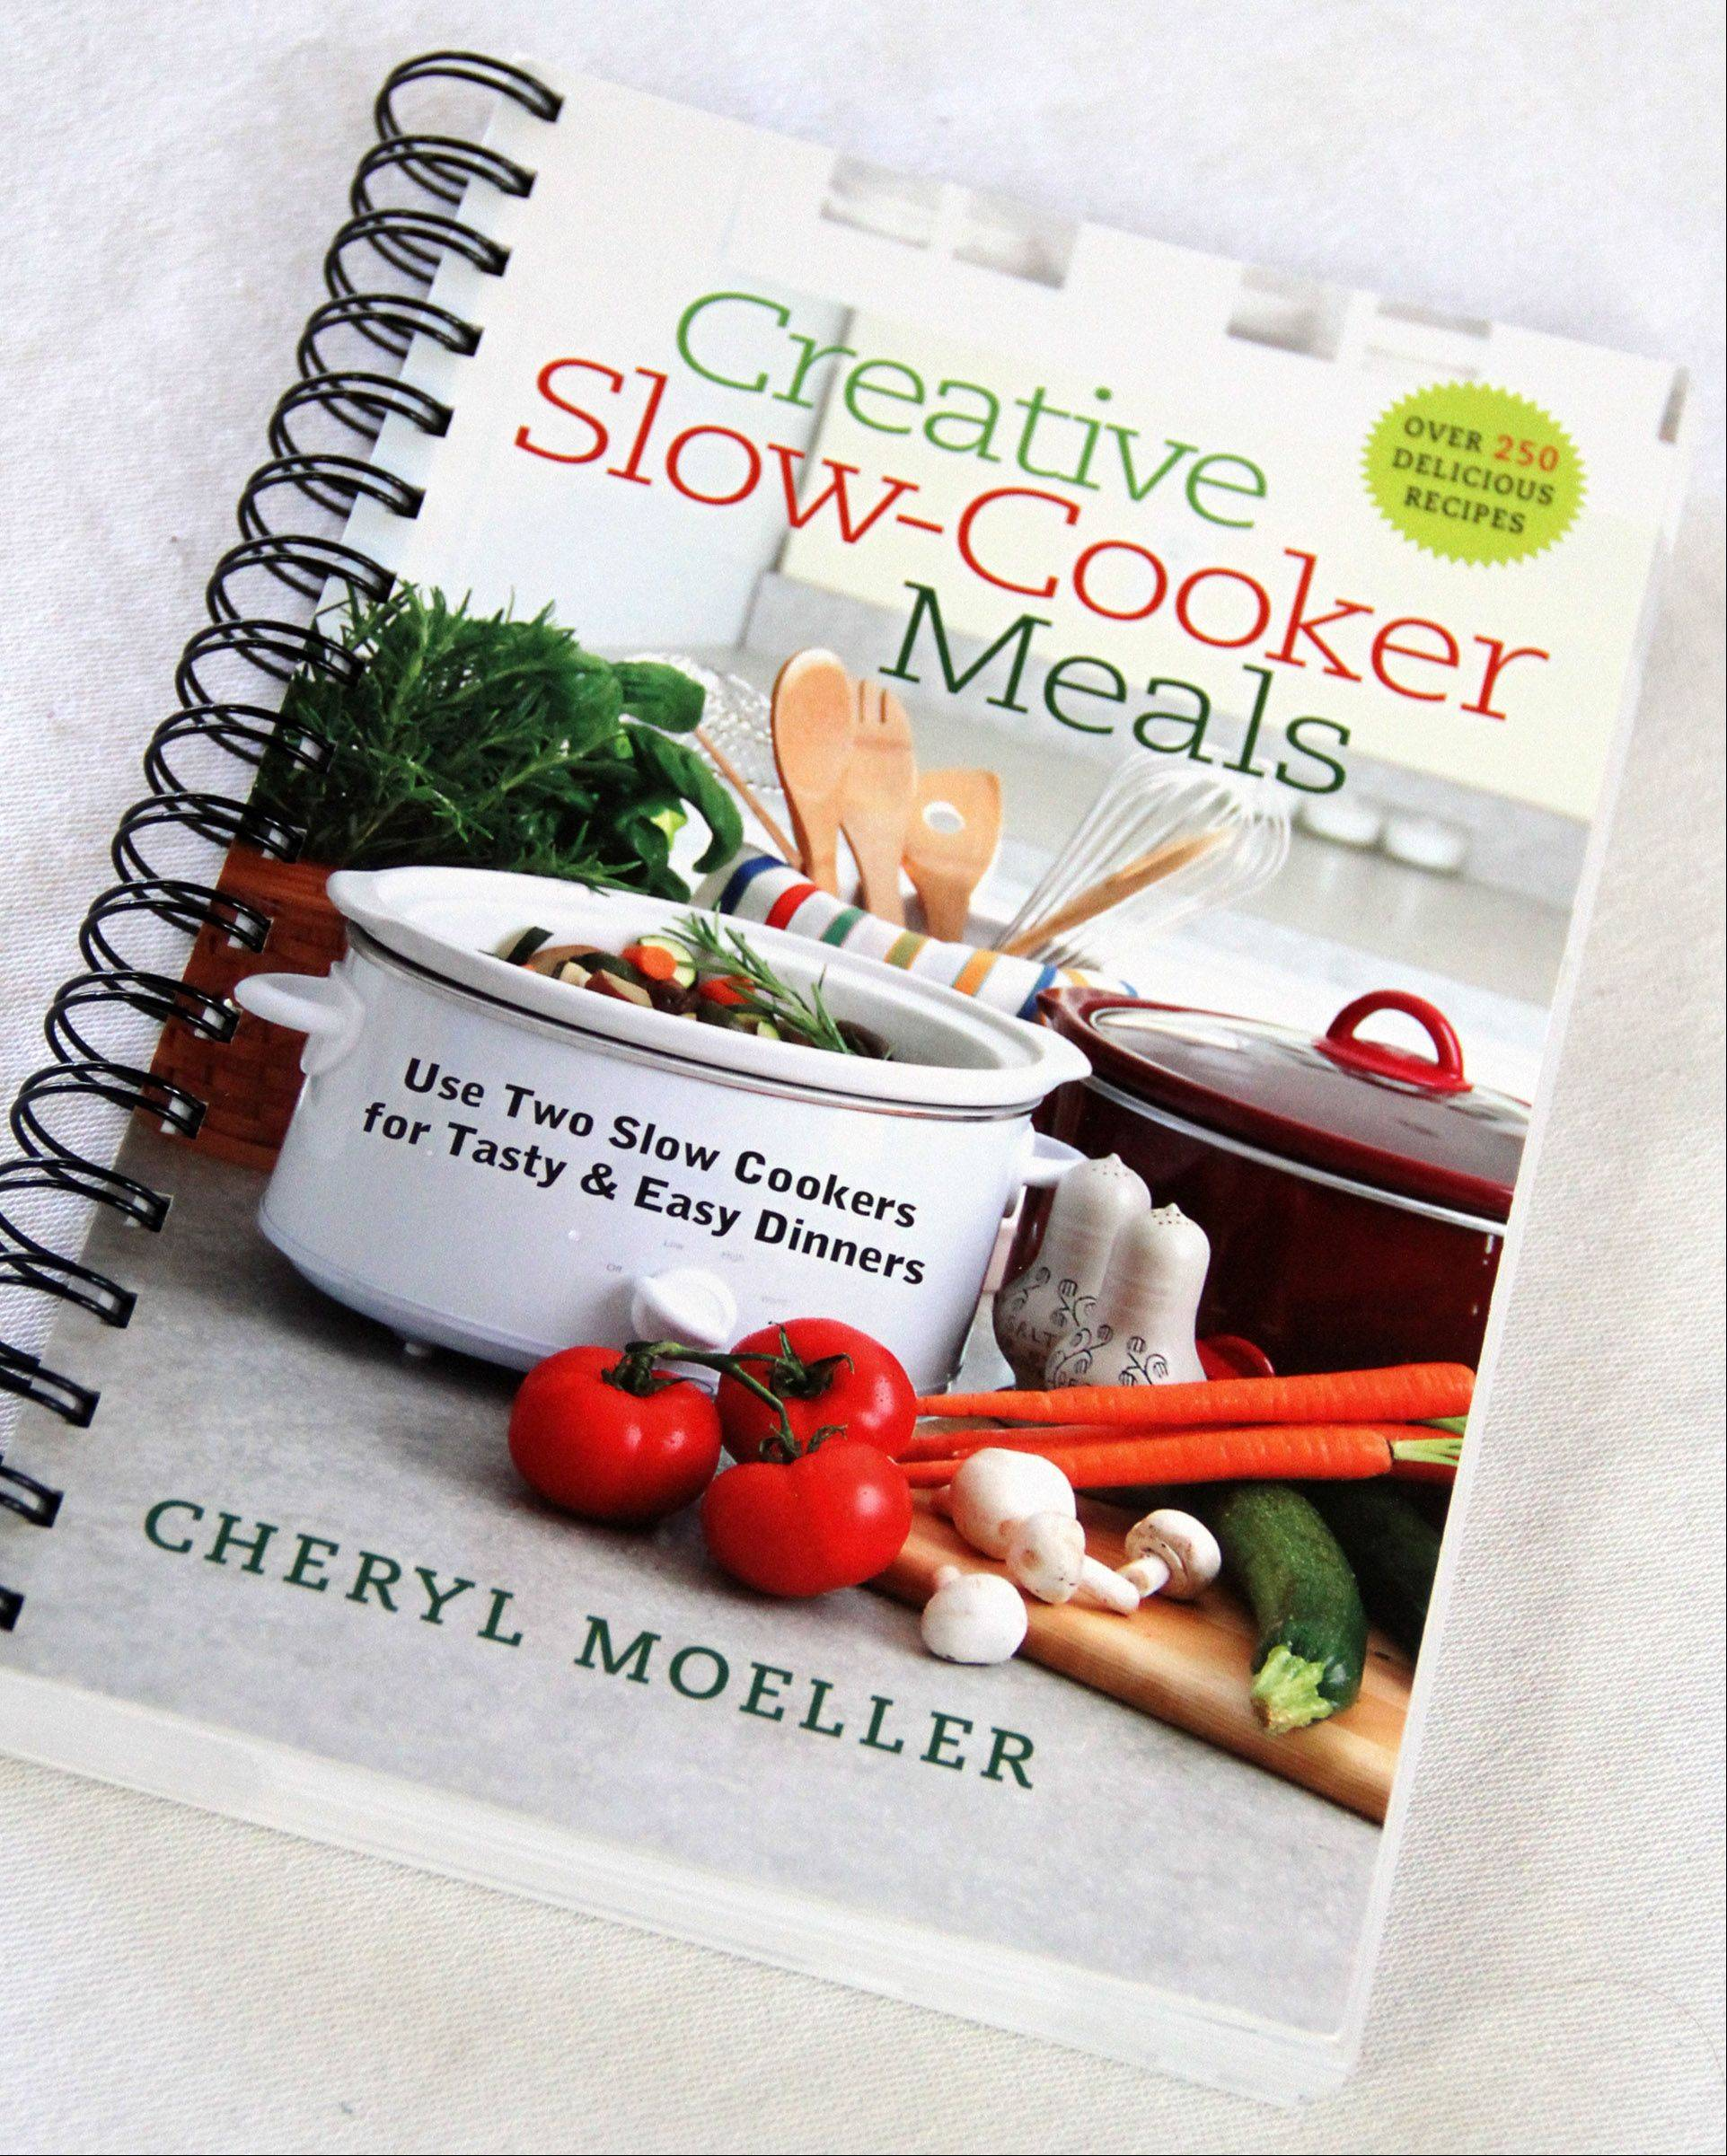 "Cheryl Moeller's ""Creative Slow-Cooker Meals"""